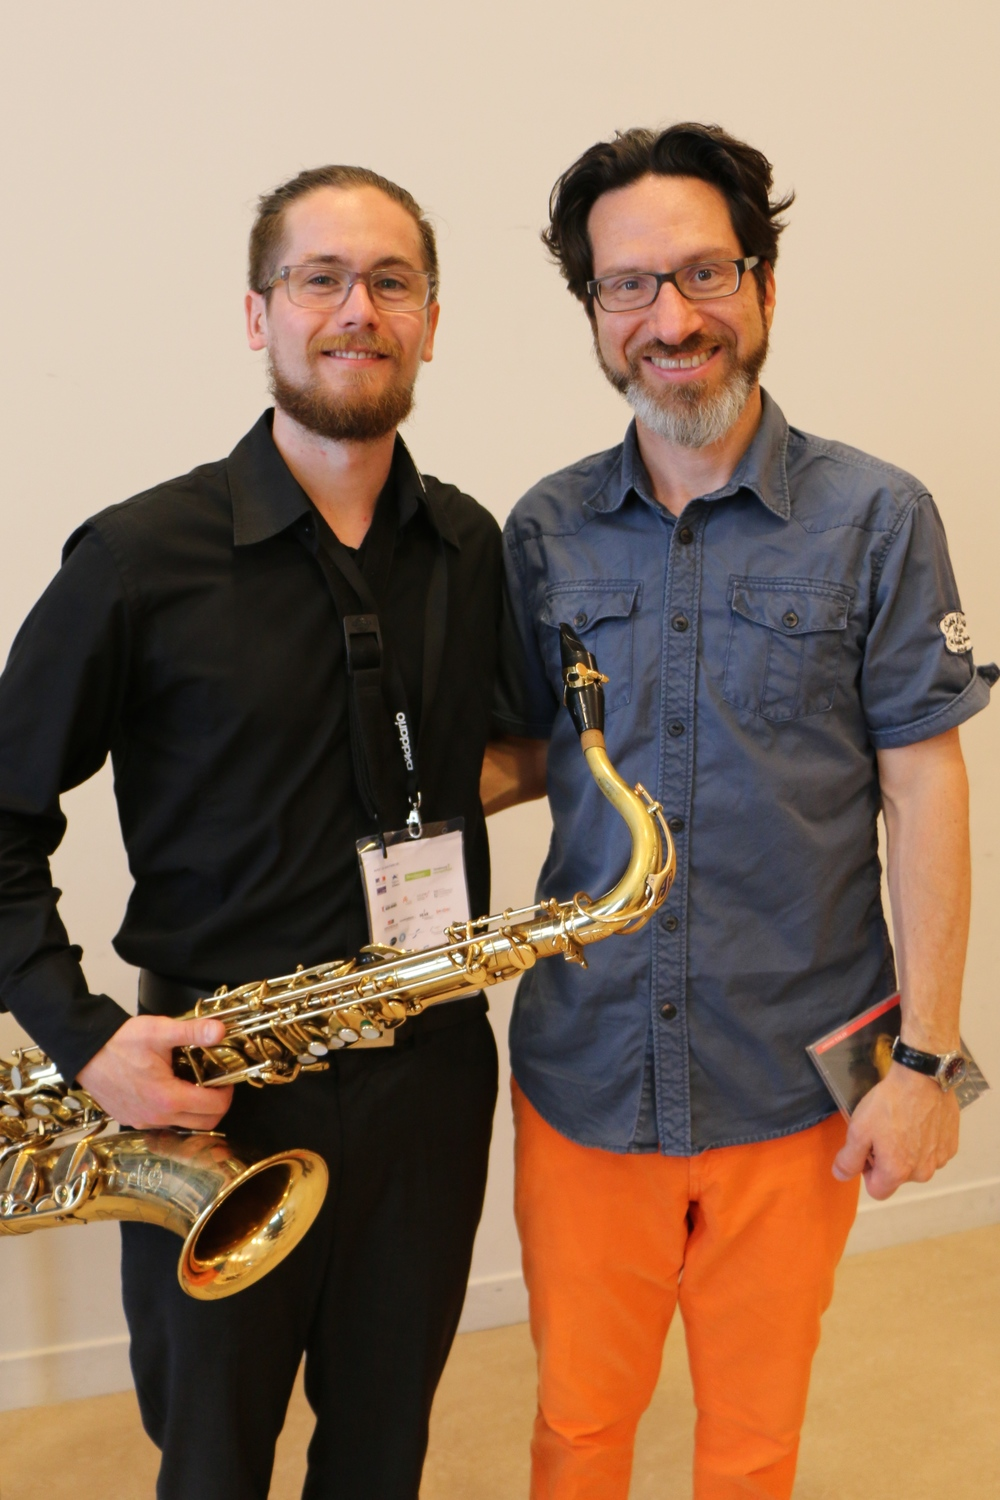 Gordon Fitzell and Tommy Davis at the XVII World Saxophone Congress, Strasbourg, France